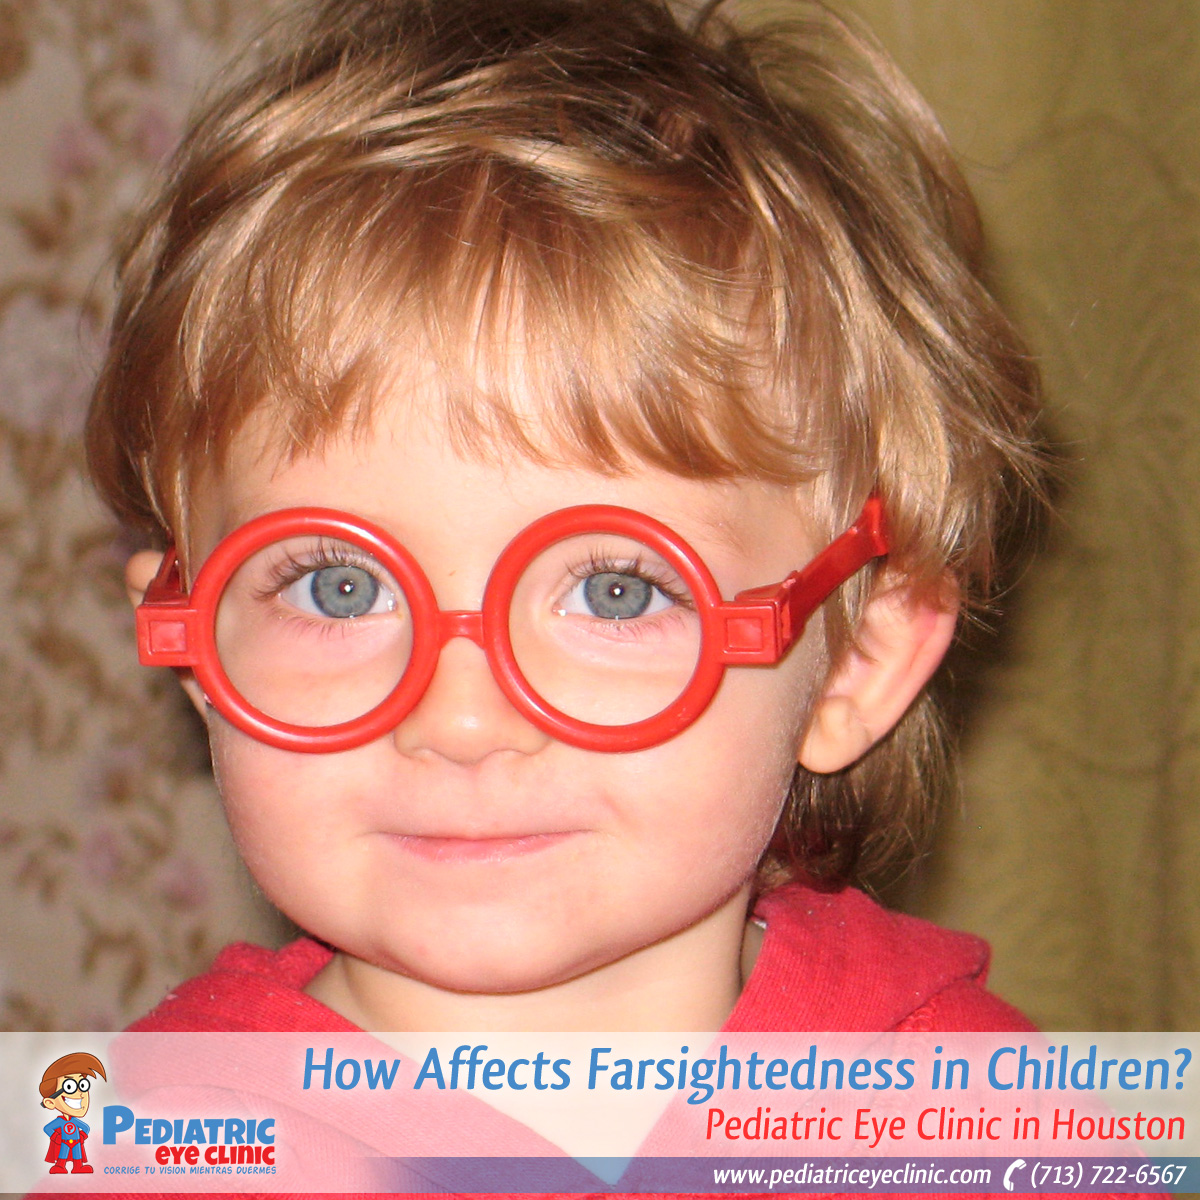 17-how-affects-farsightedness-in-children